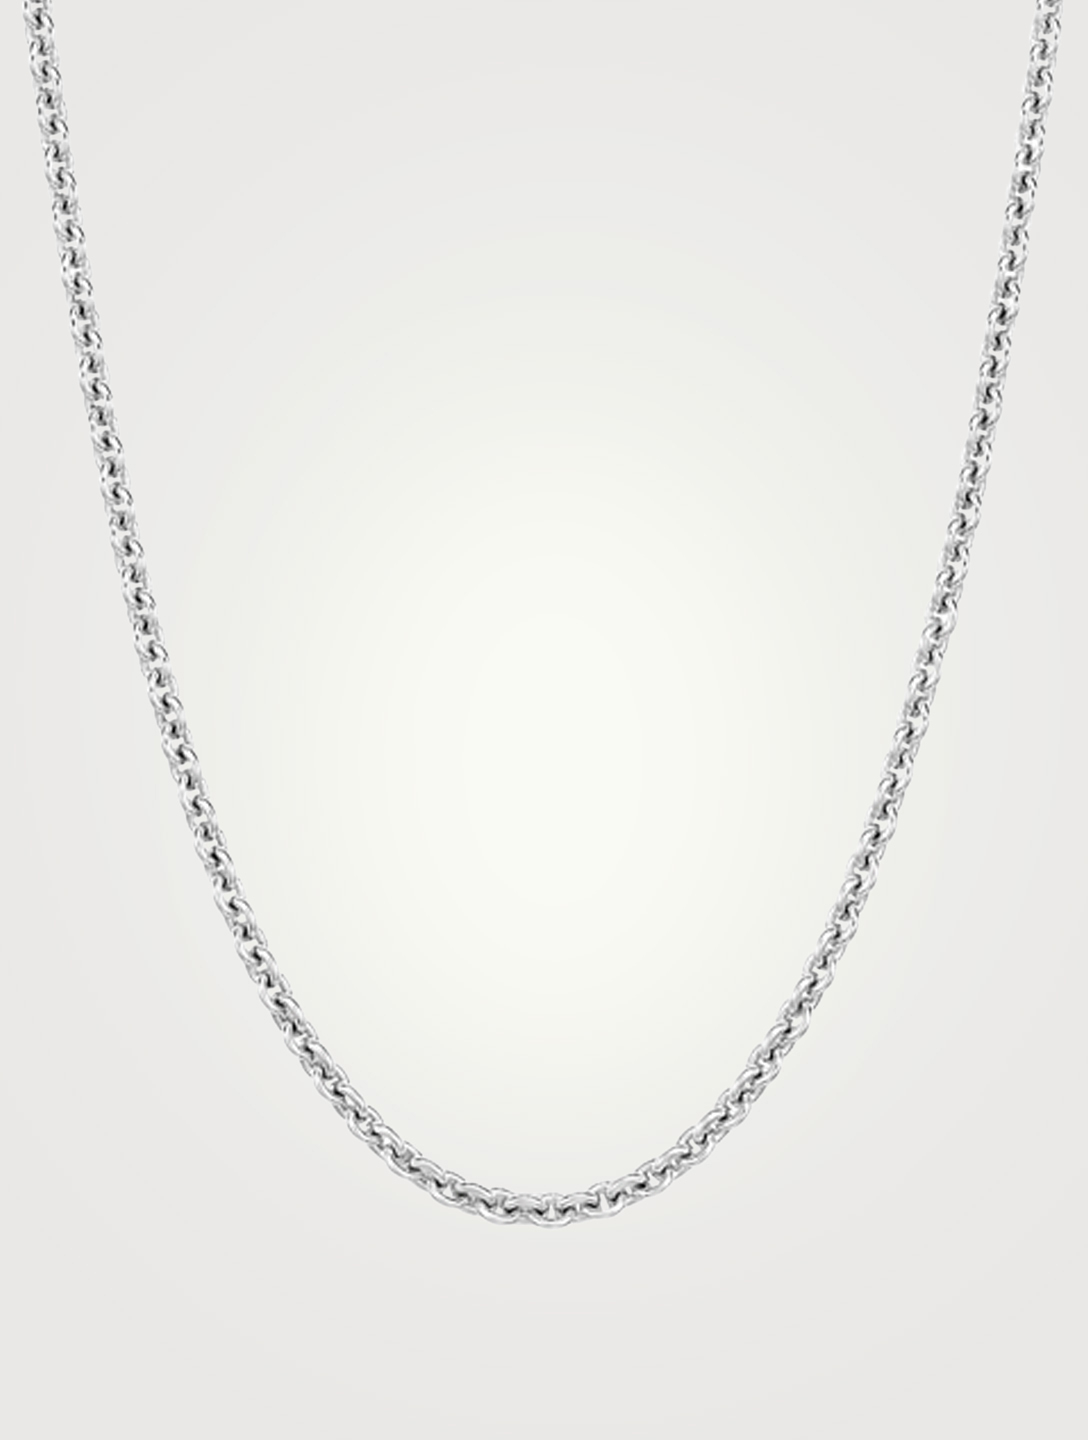 QEELIN 18K White Gold Chain Necklace Women's Silver